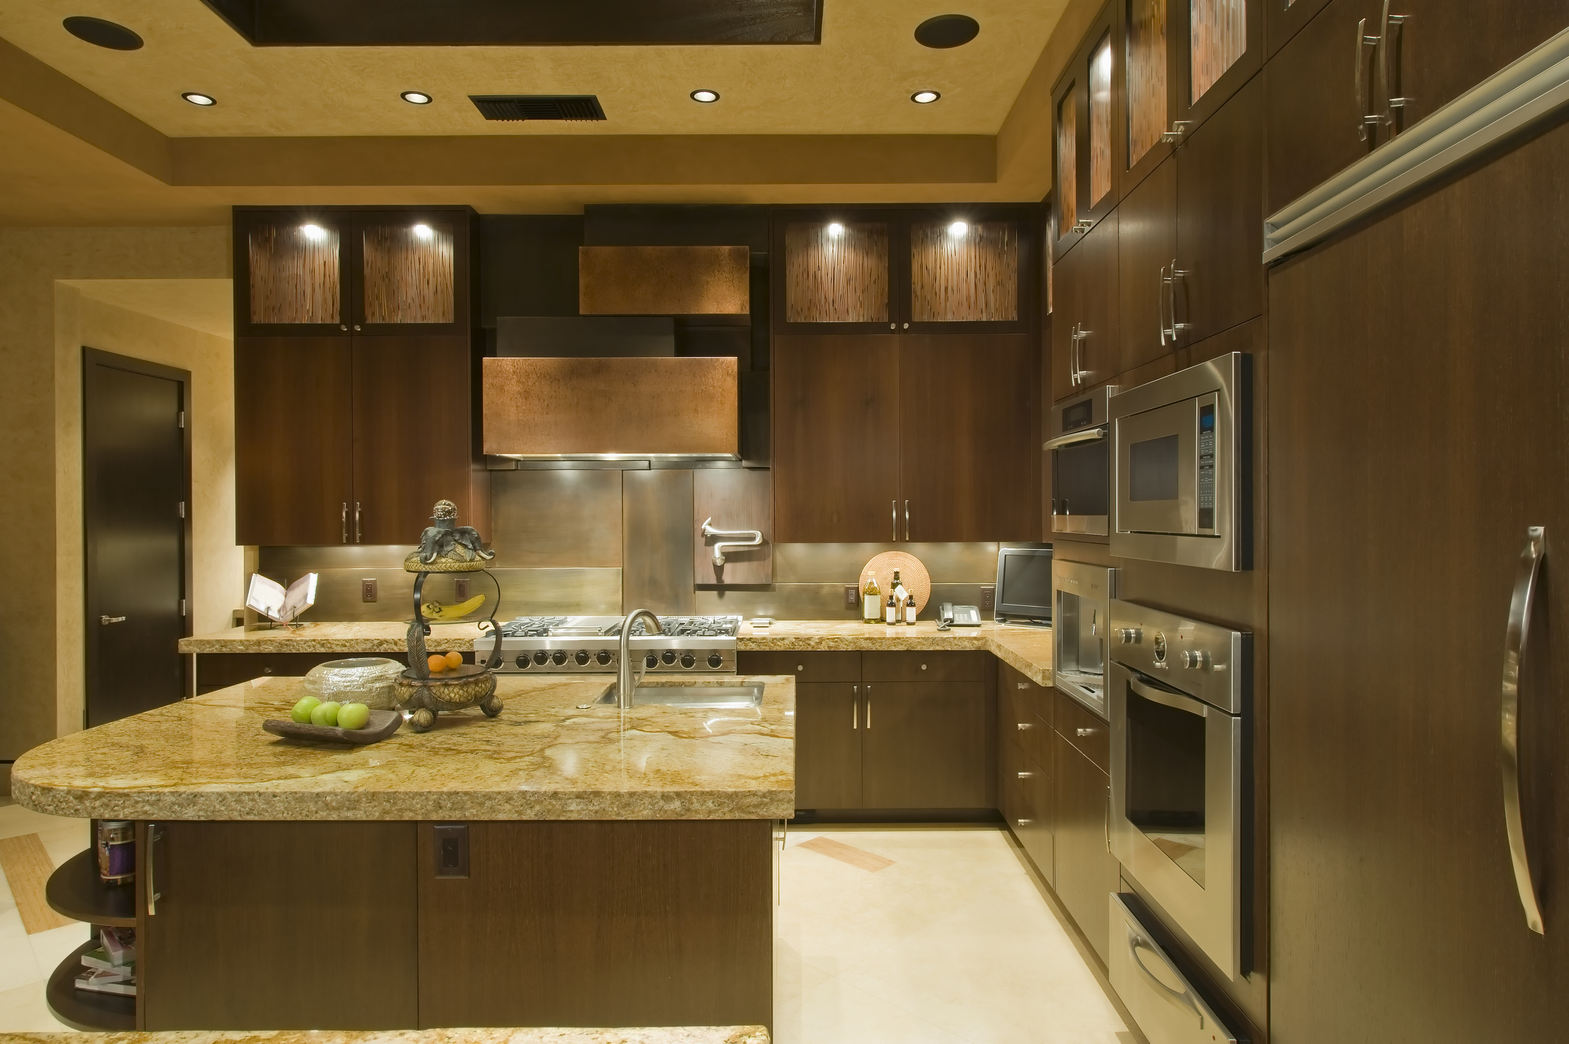 Dc kitchen remodeling trends for 2015 2016 for Kitchen remodel styles